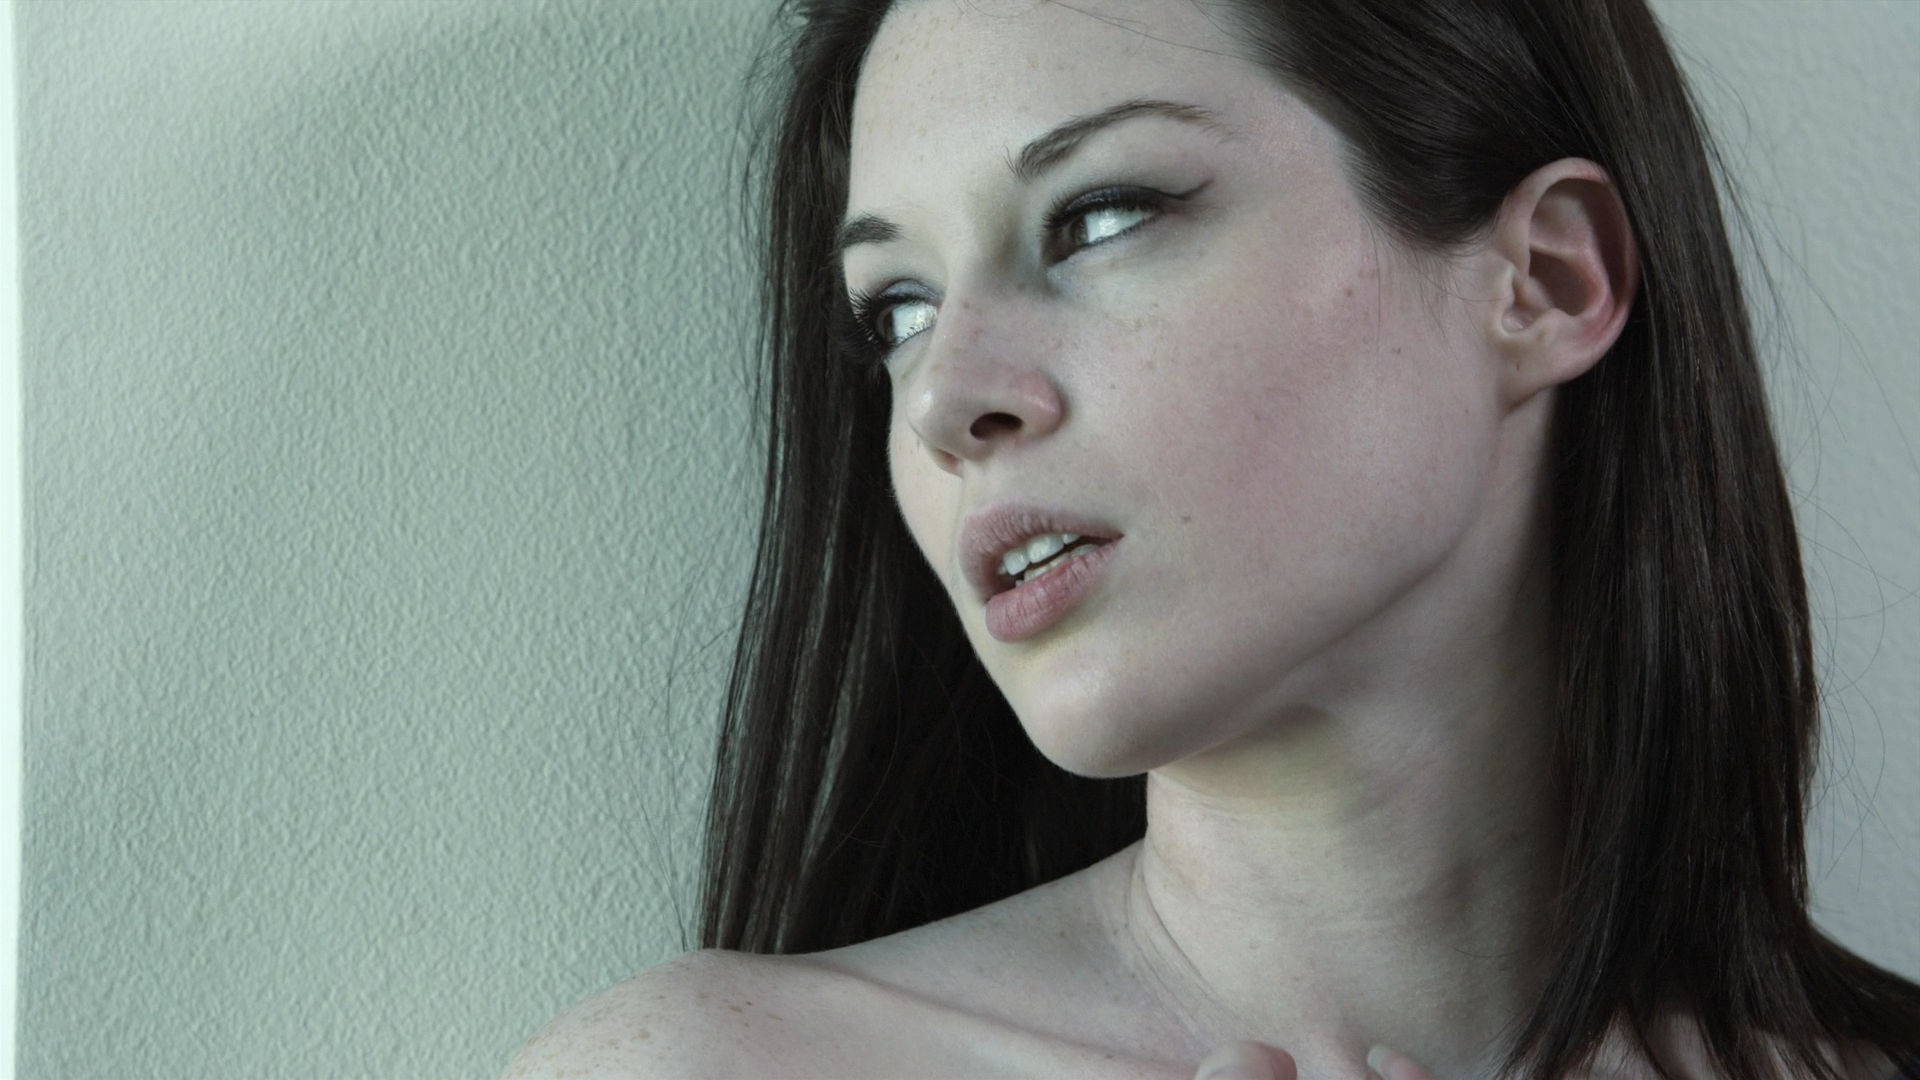 simple background brunette pornstar looking away women stoya brown eyes model